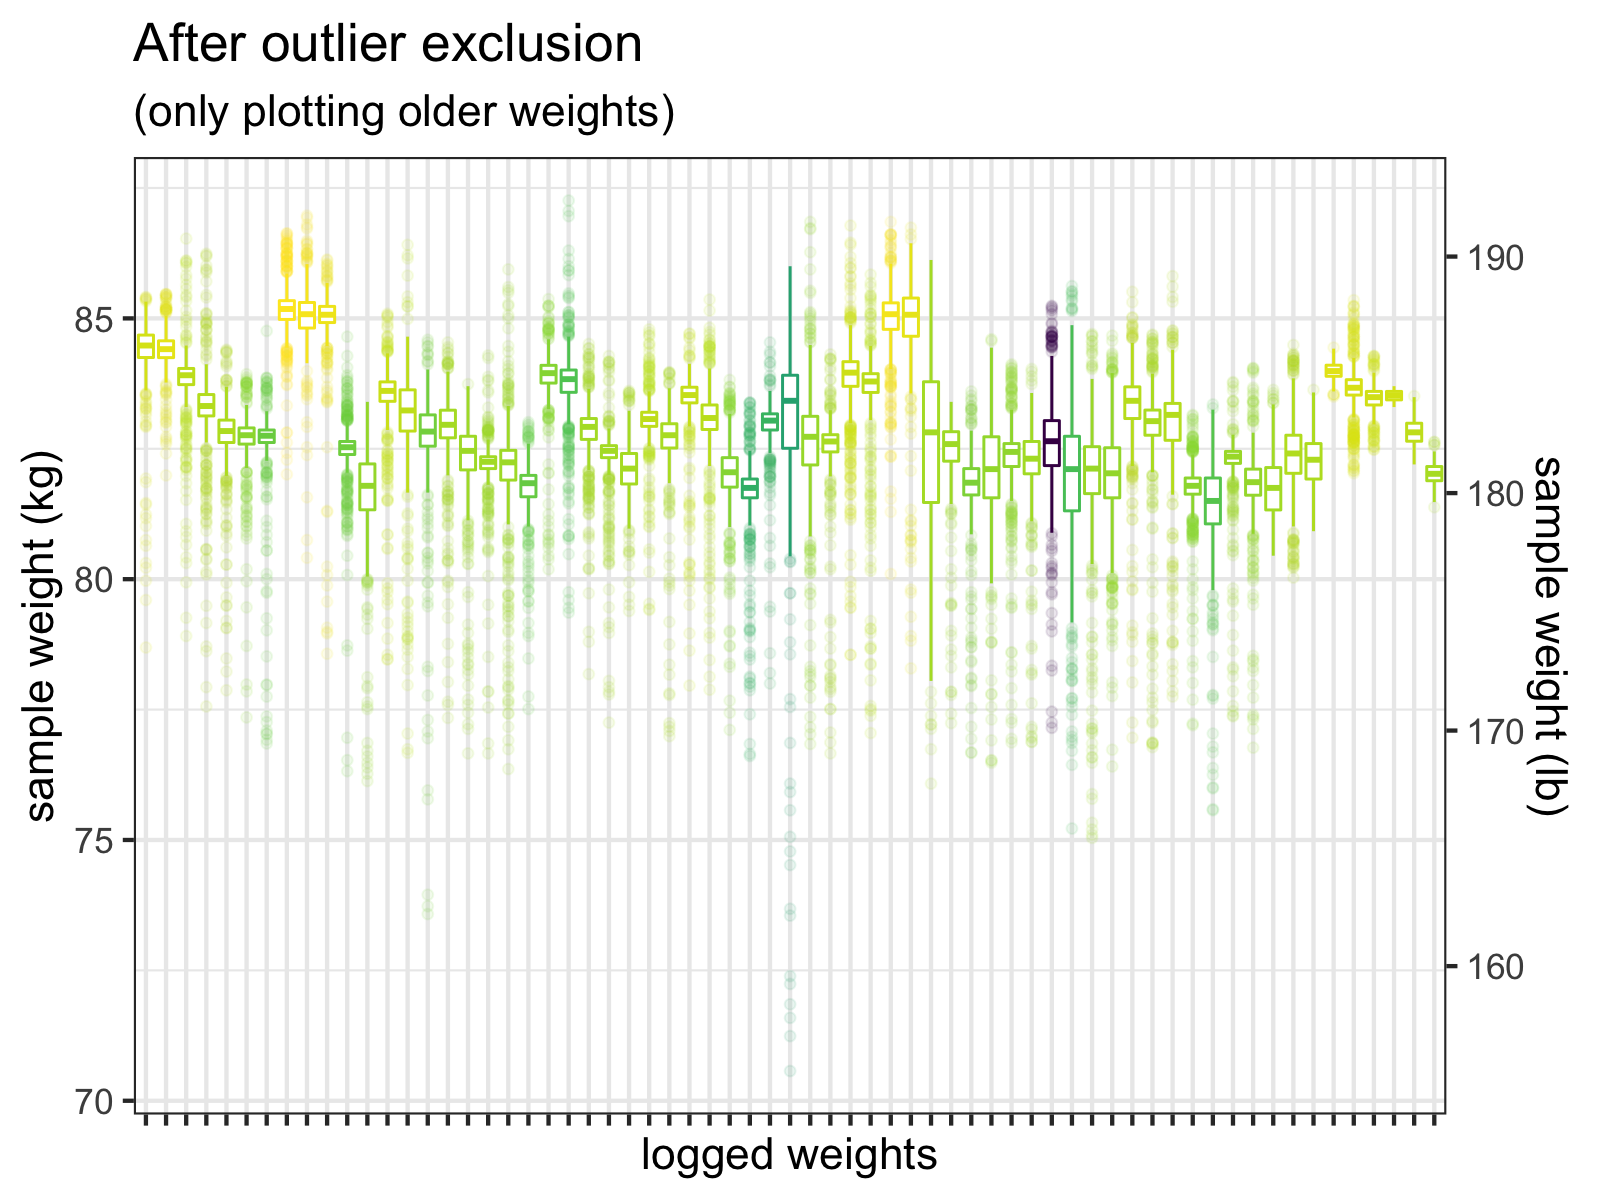 After I exclude samples <= 60 kg, and <em>then</em> exclude outliers > +-3 SD, the outliers are much less extreme. We do see a few values < 75 kg, but these <em>could</em> be real weights. (Wishful thinking, perhaps.)